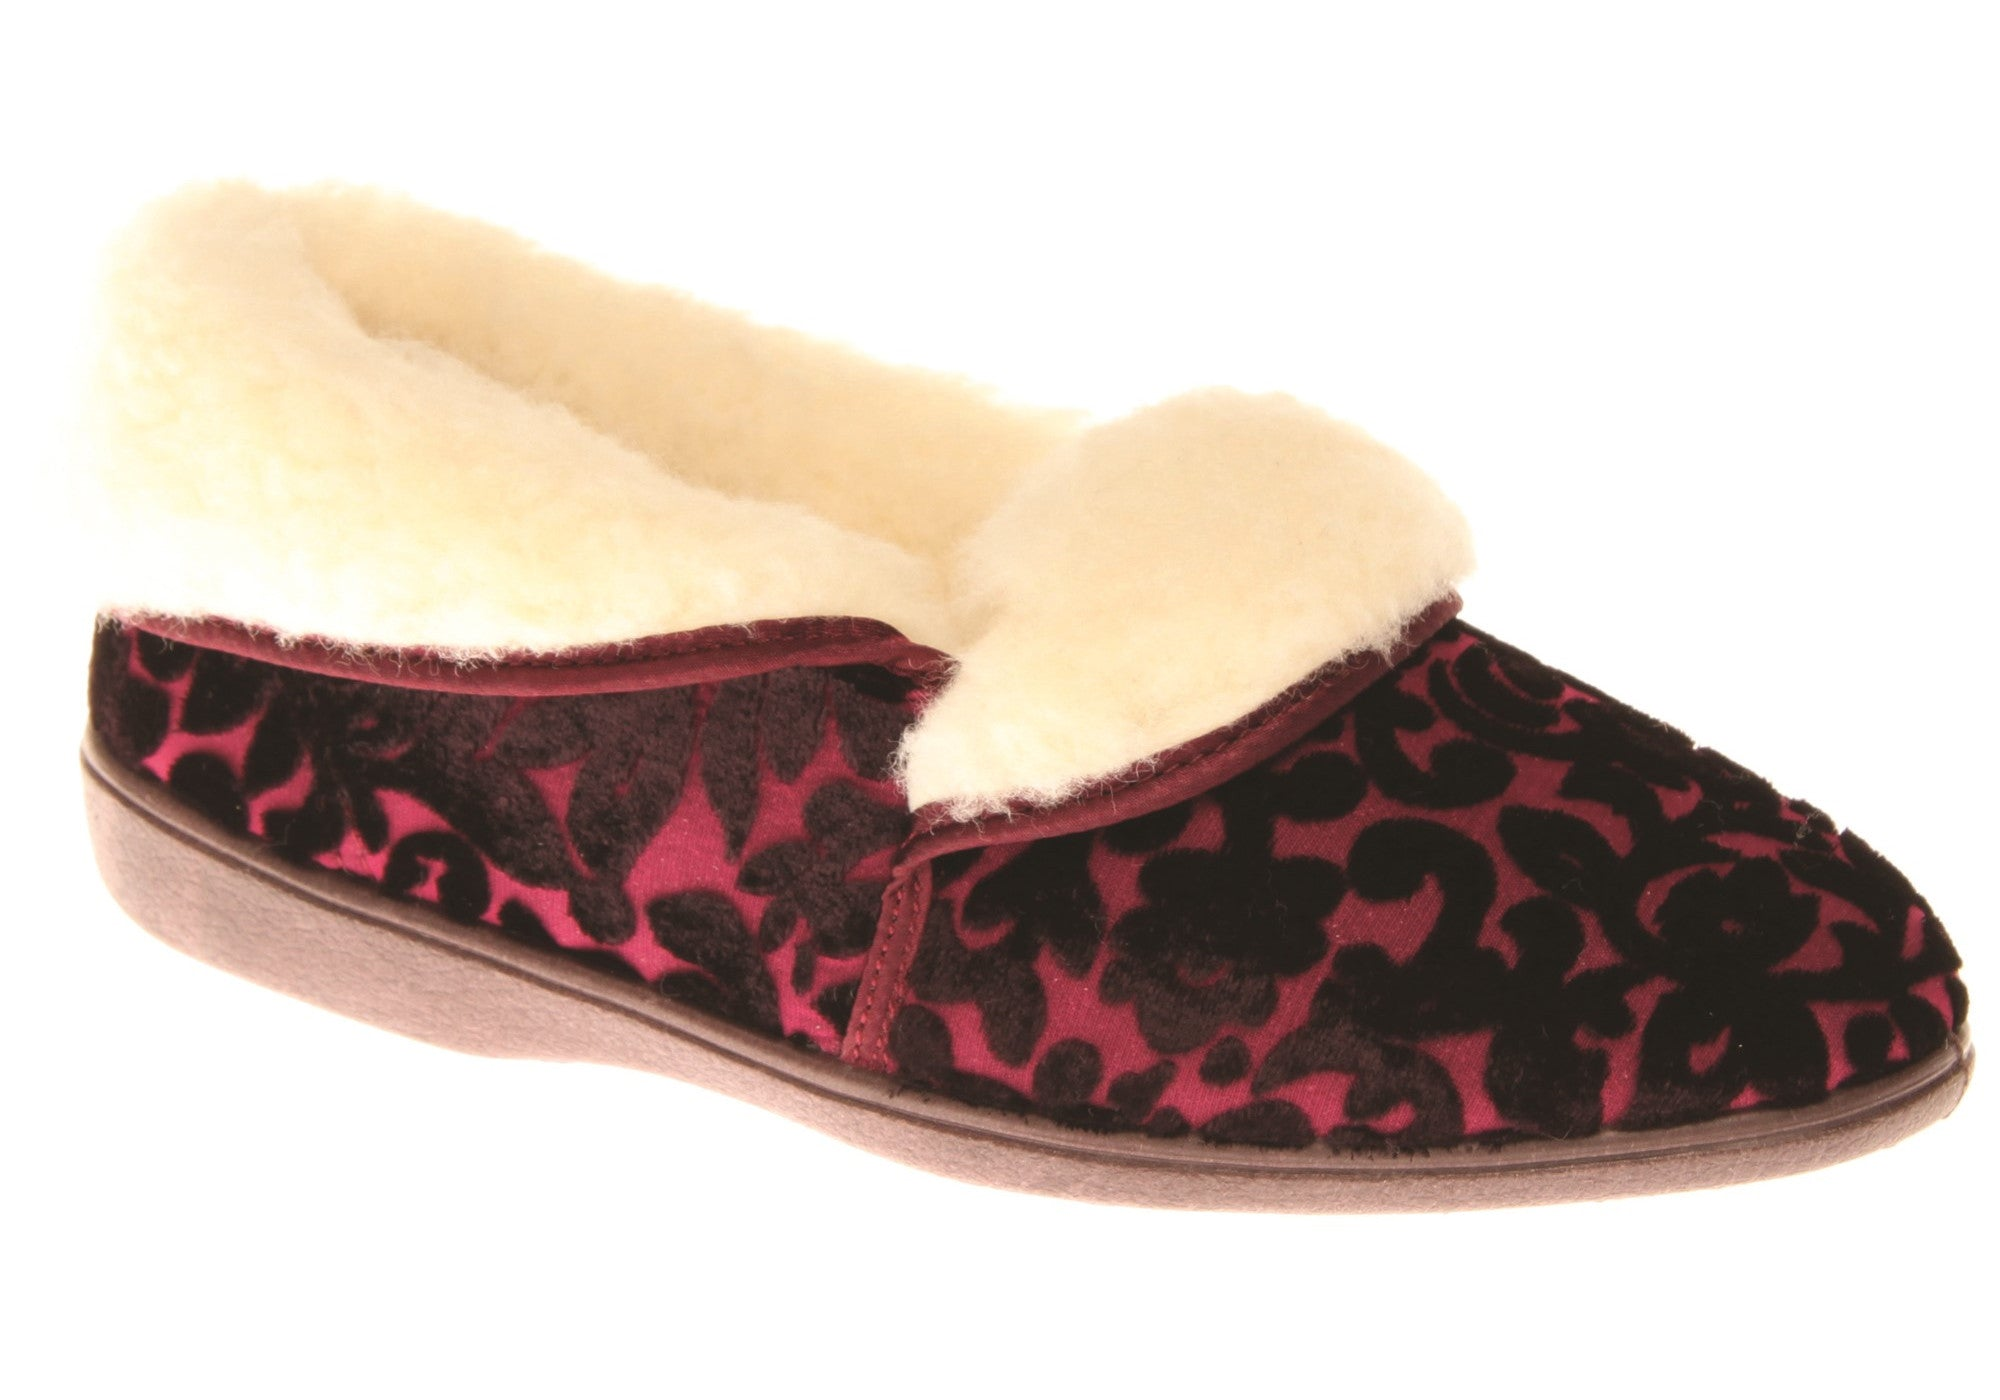 NEW GROSBY MARE WOMENS COMFORTABLE WARM SLIPPERS